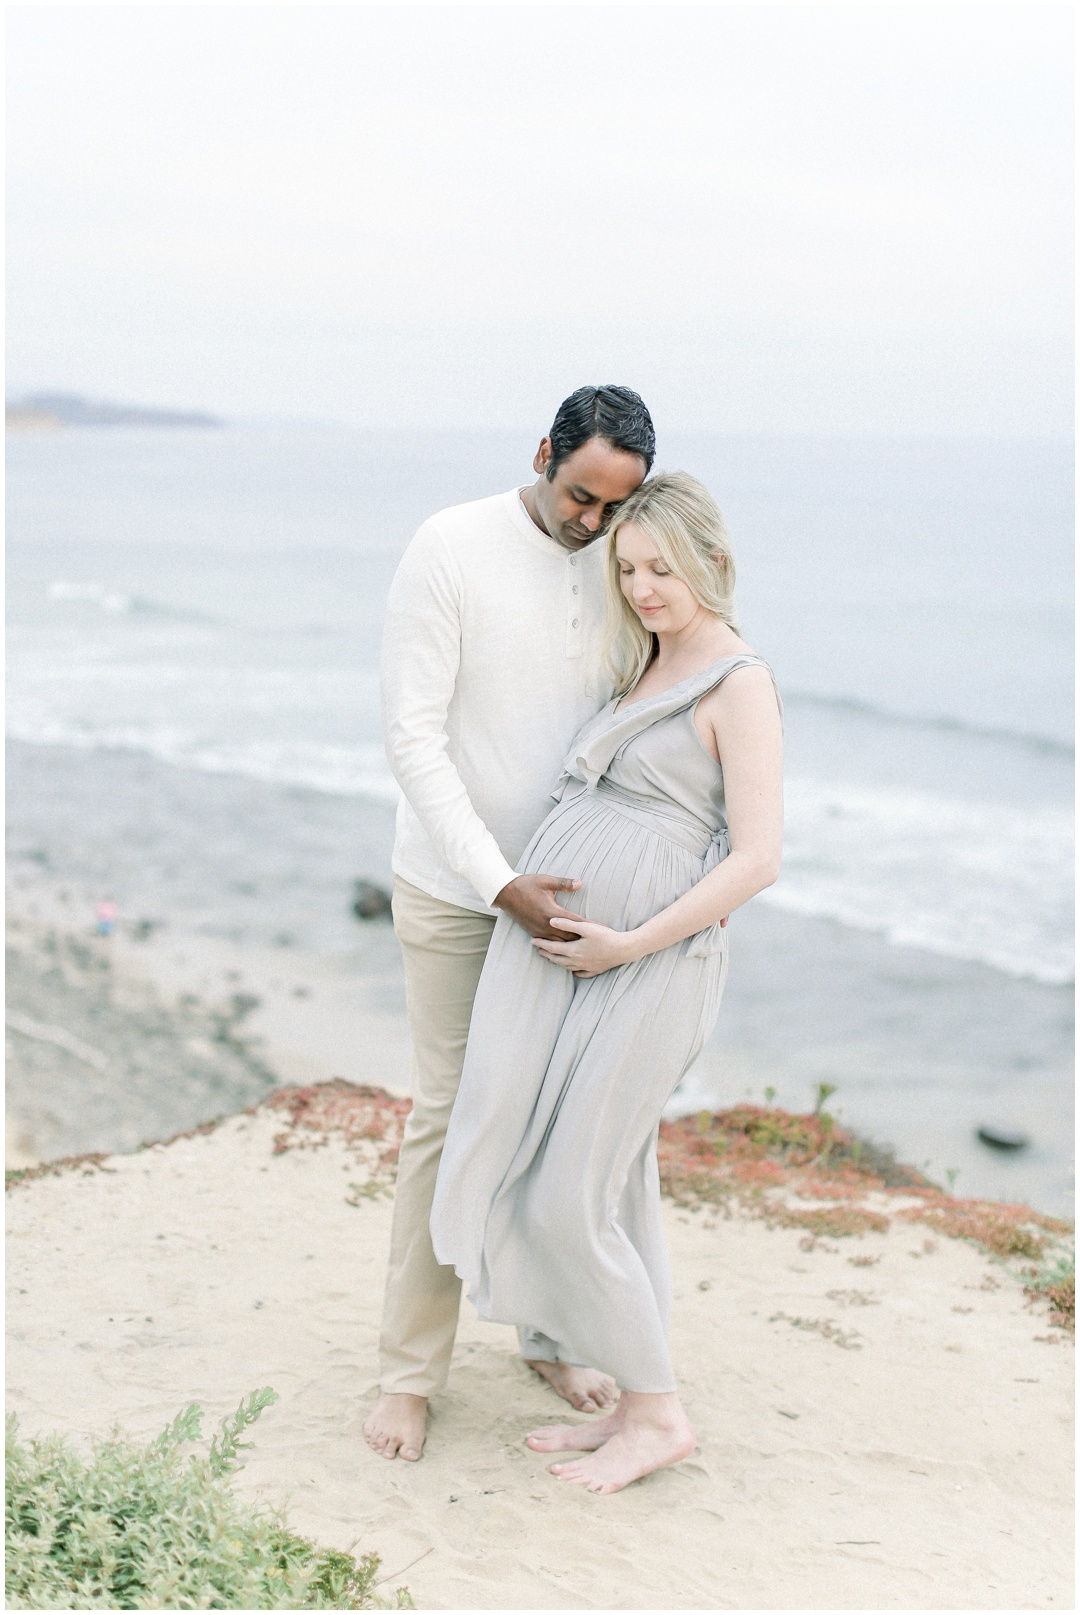 Newport_Beach_Newborn_Light_Airy_Natural_Photographer_Newport_Beach_Photographer_Orange_County_Family_Photographer_Cori_Kleckner_Photography_Huntington_Beach_Photographer_Family_OC_Maternity_Jennifer_Spohn_Rahul_Spohn_3631.jpg